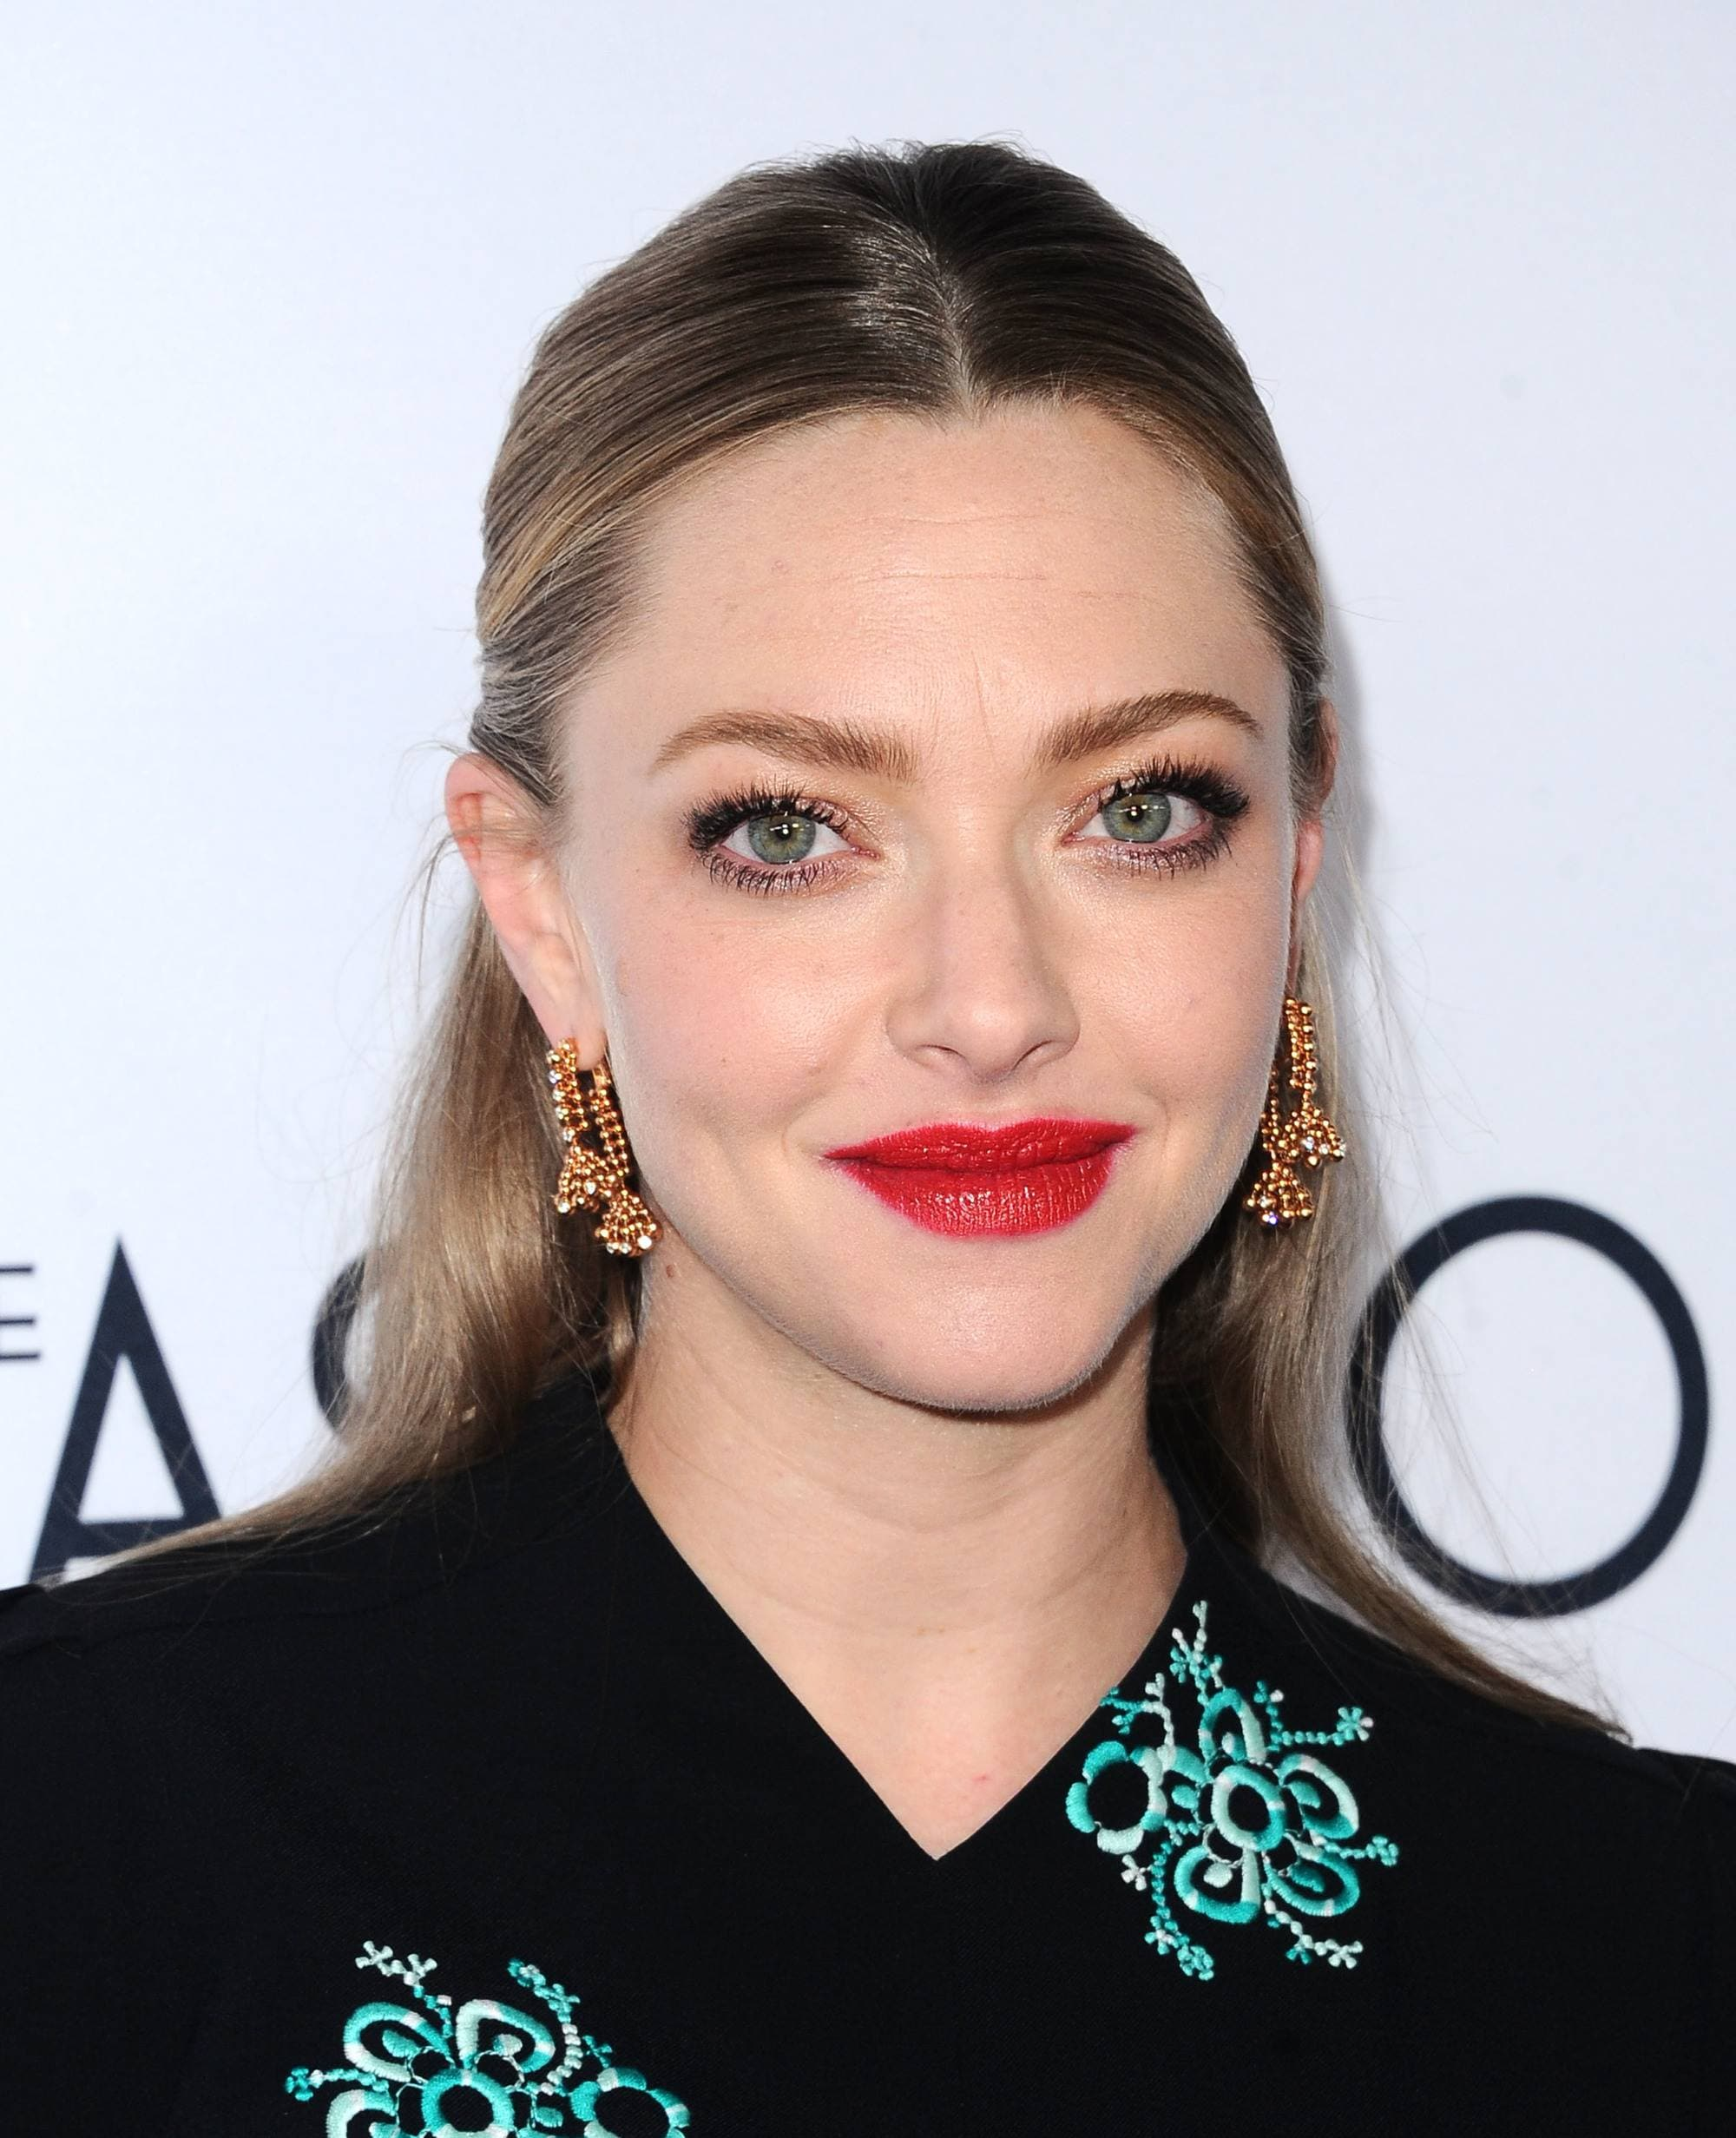 hairstyles for round faces: amanda with half up half down hairstyle on the red carpet